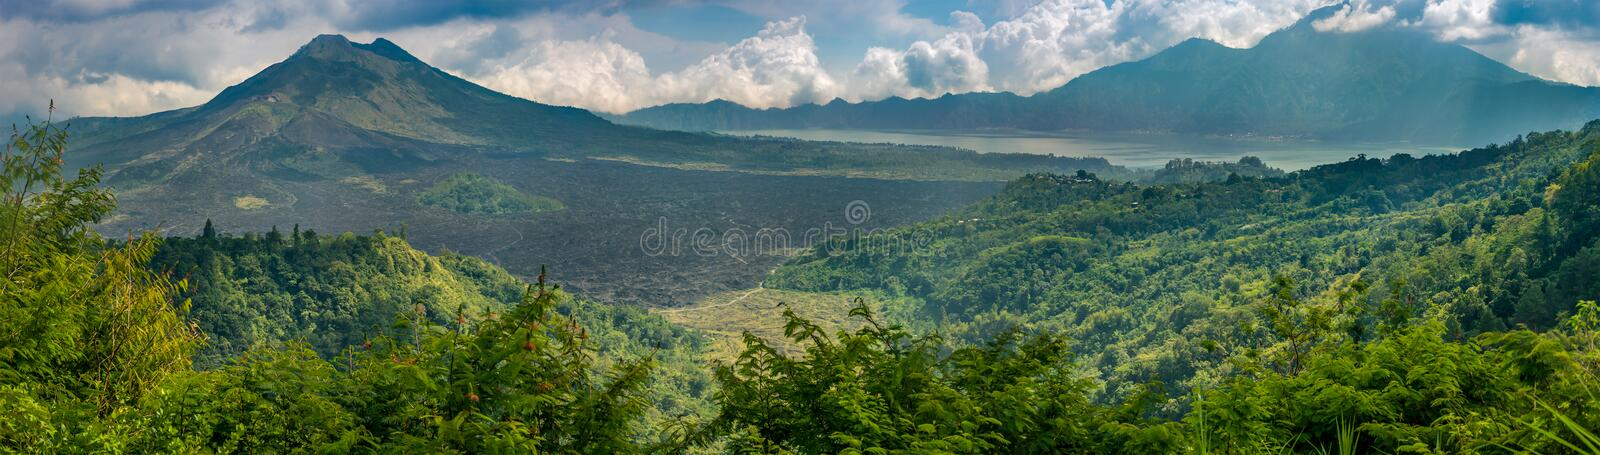 Mt Batur and Mt Agung volcanoes stock image